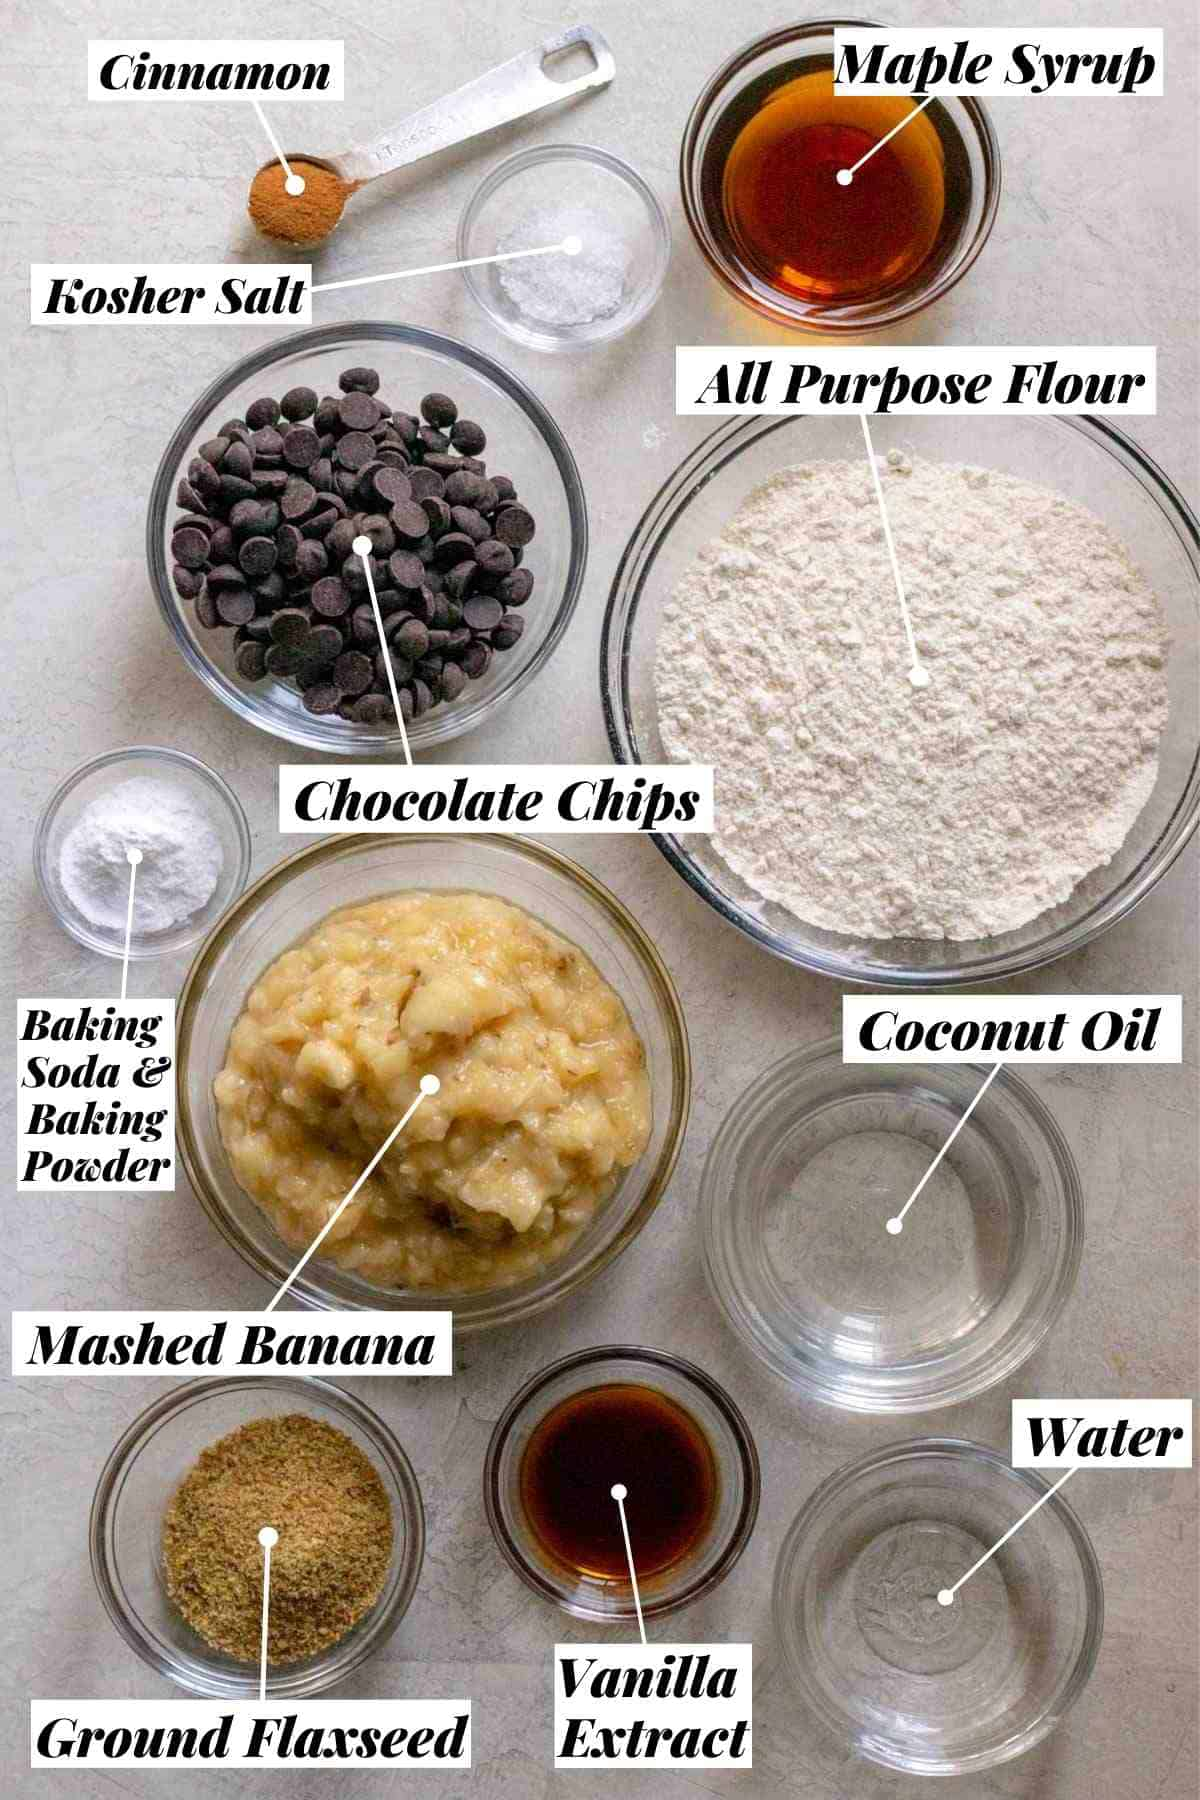 Ingredients for banana bread measured out into individual bowls and labeled.